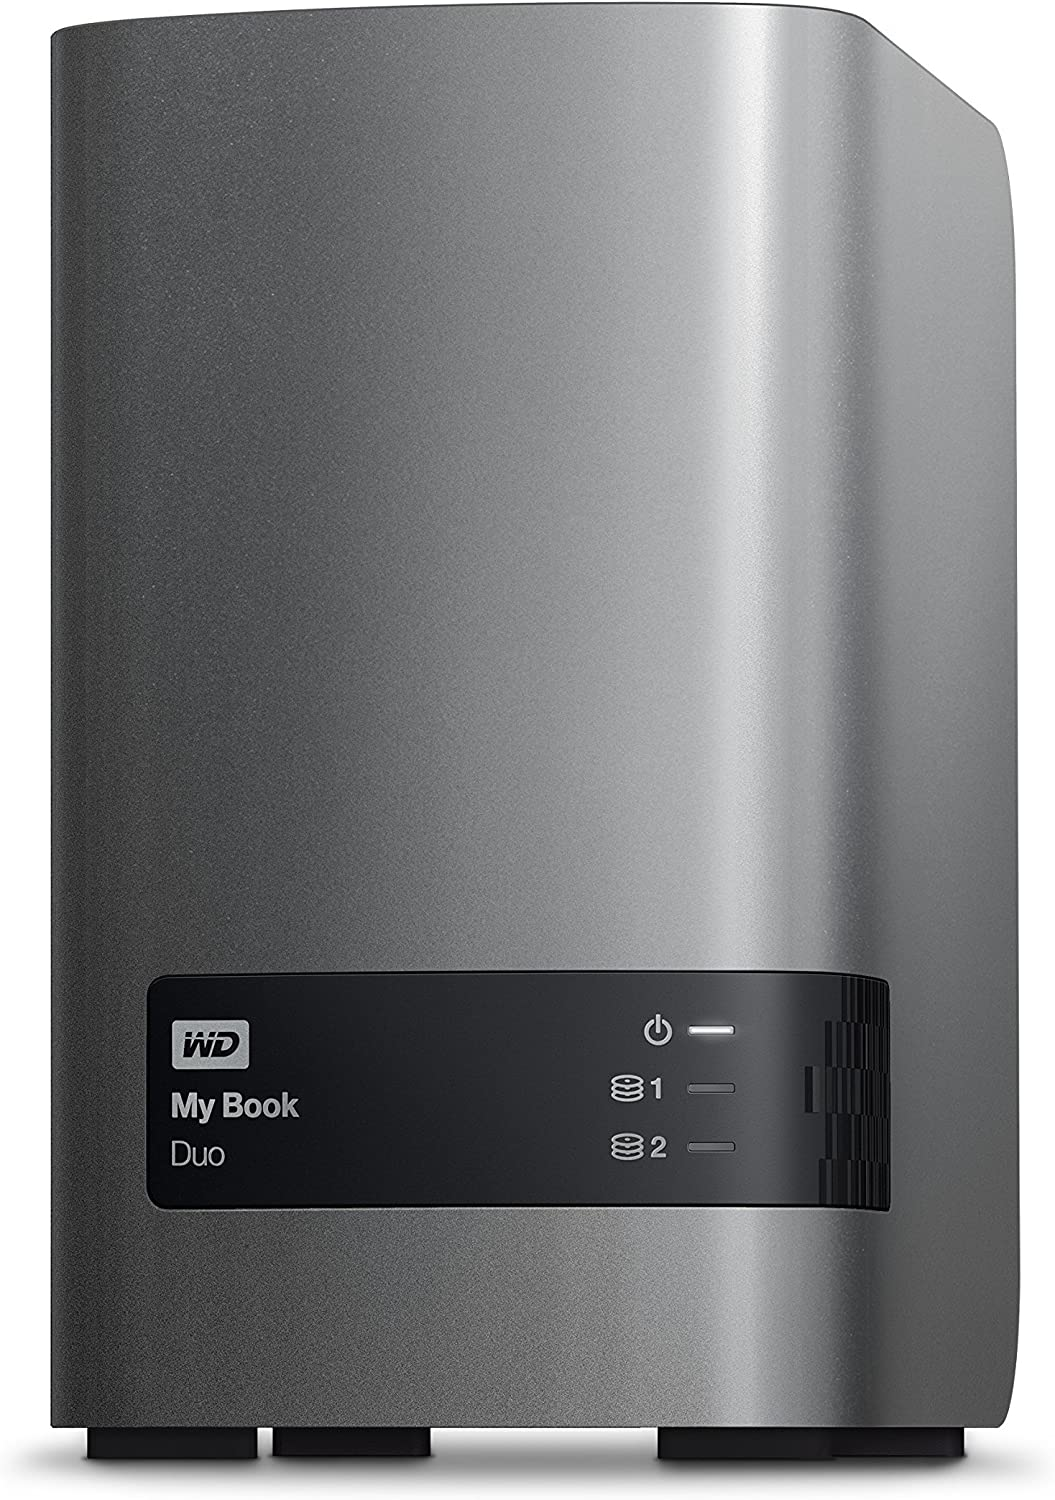 WD 6TB My Book Duo Desktop RAID External Hard Drive - USB 3.0 - WDBLWE0060JCH-NESN